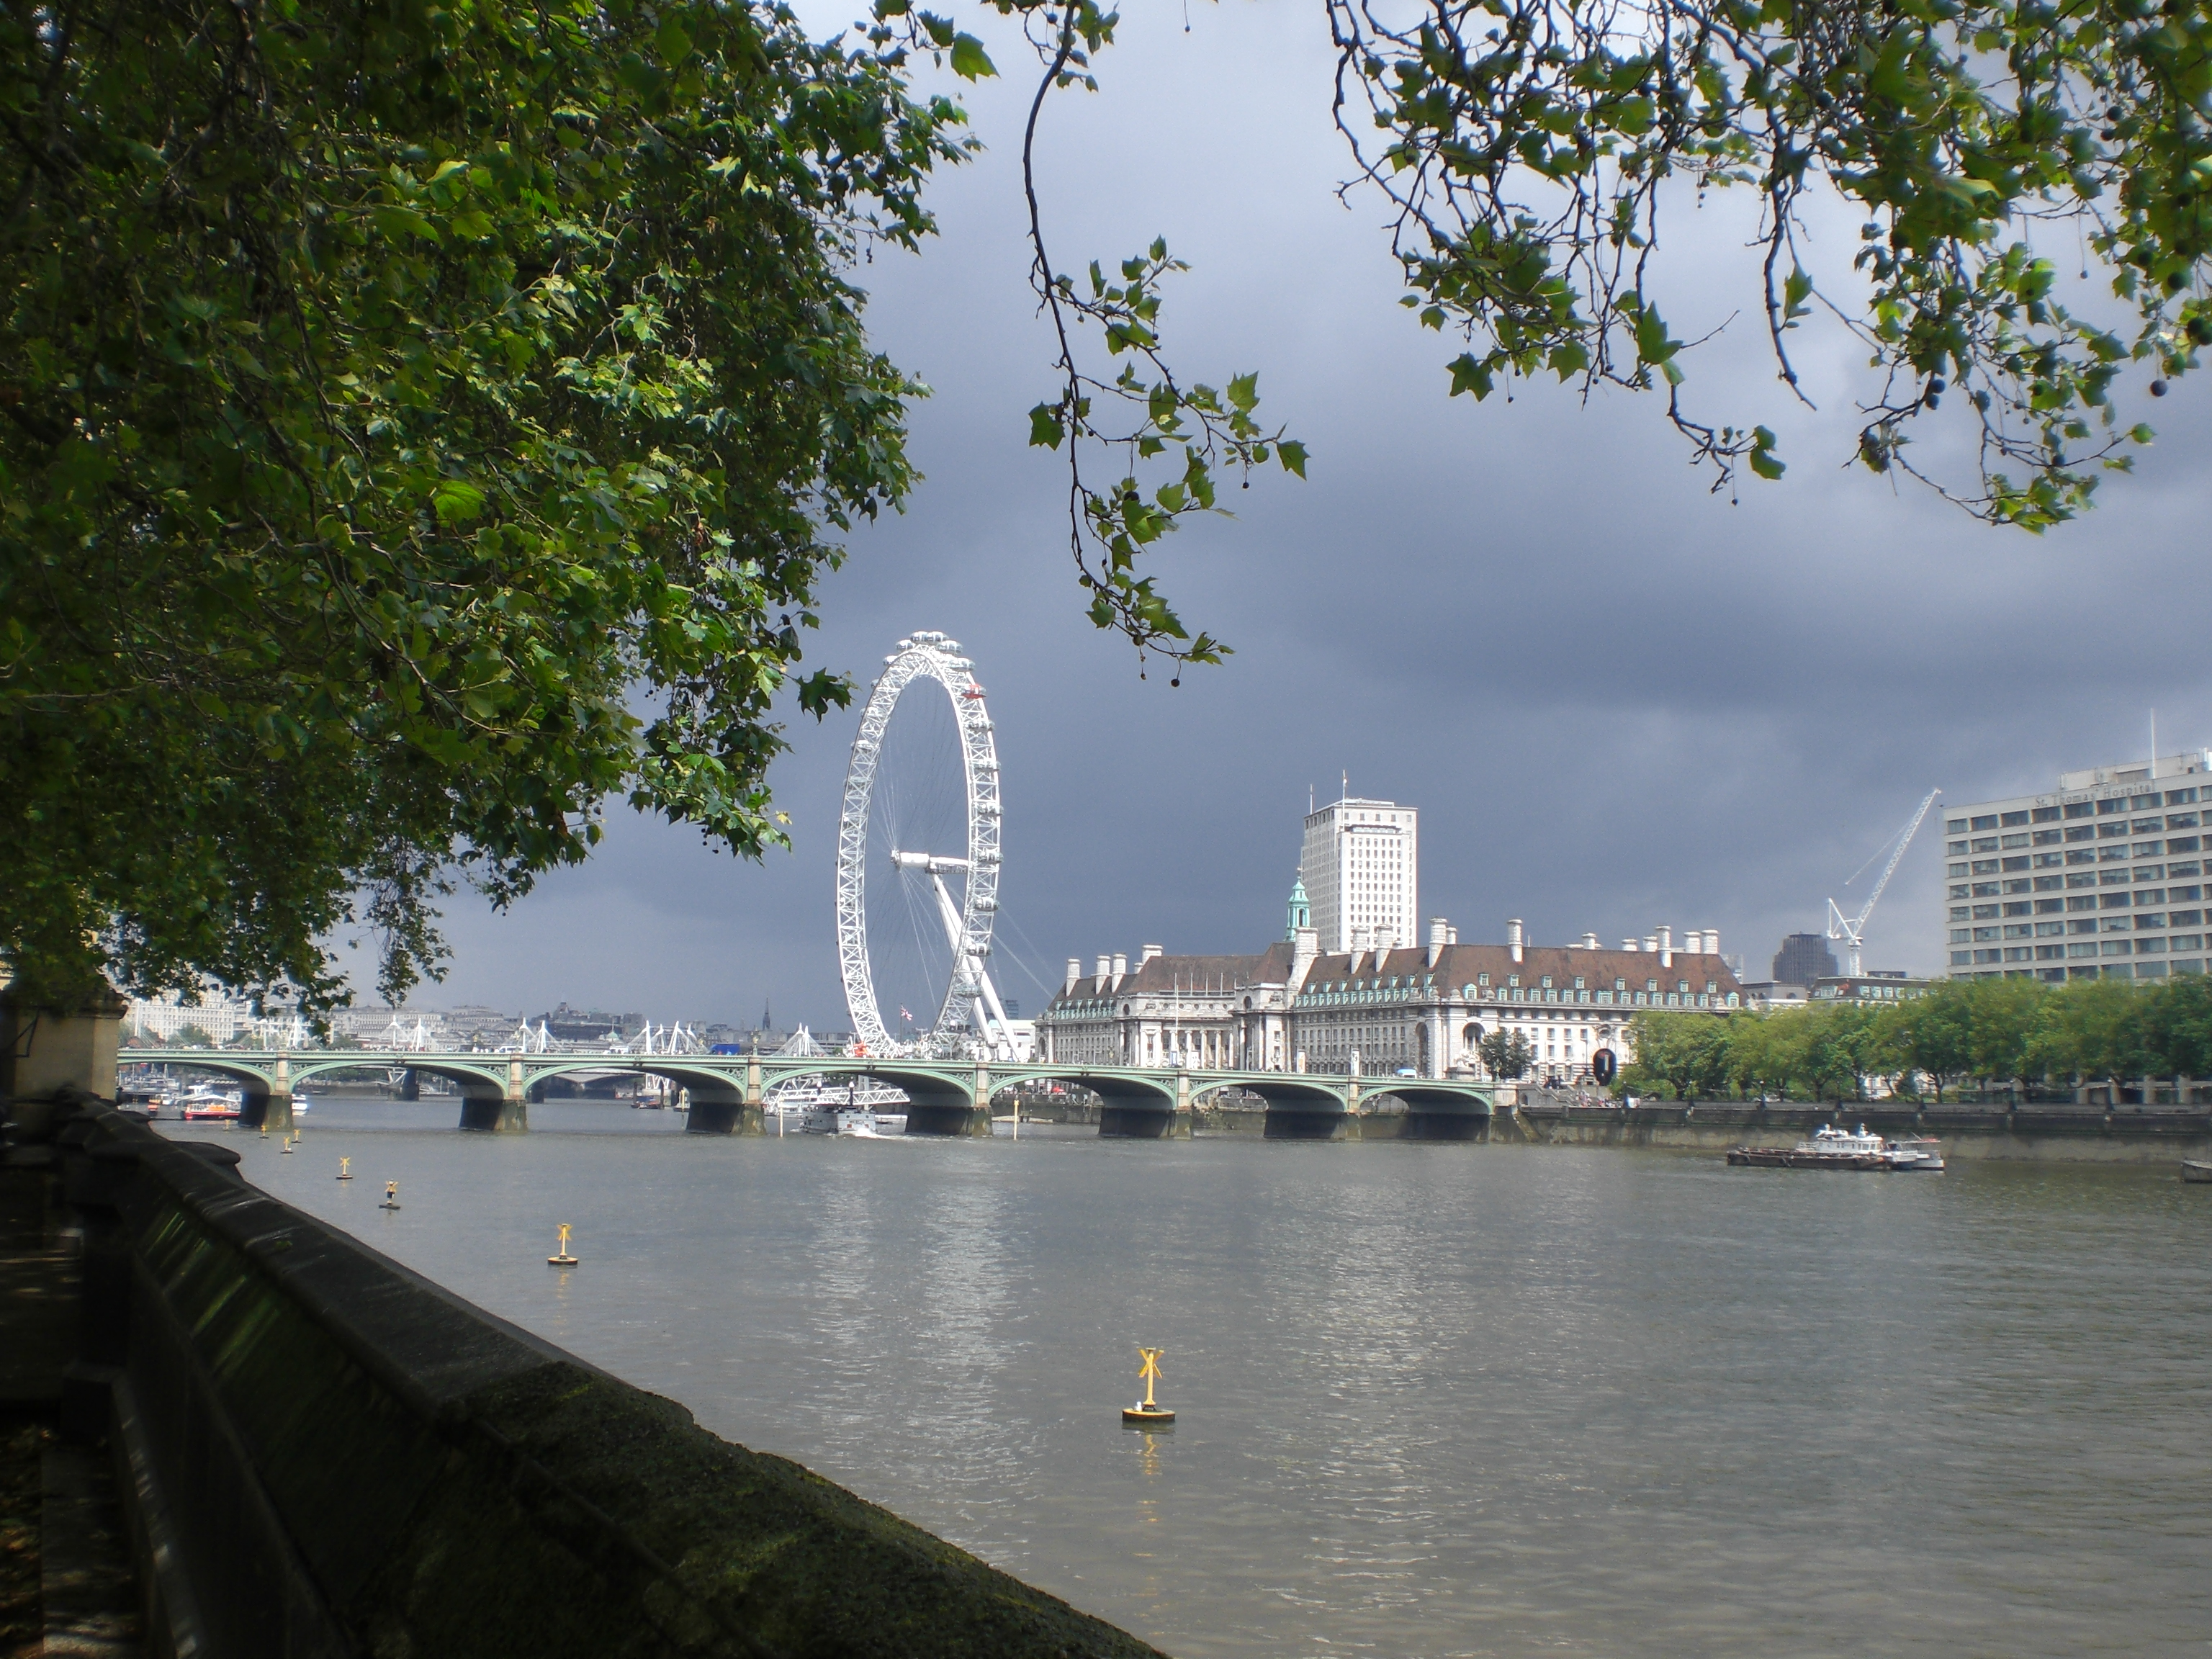 London eye from Westminster